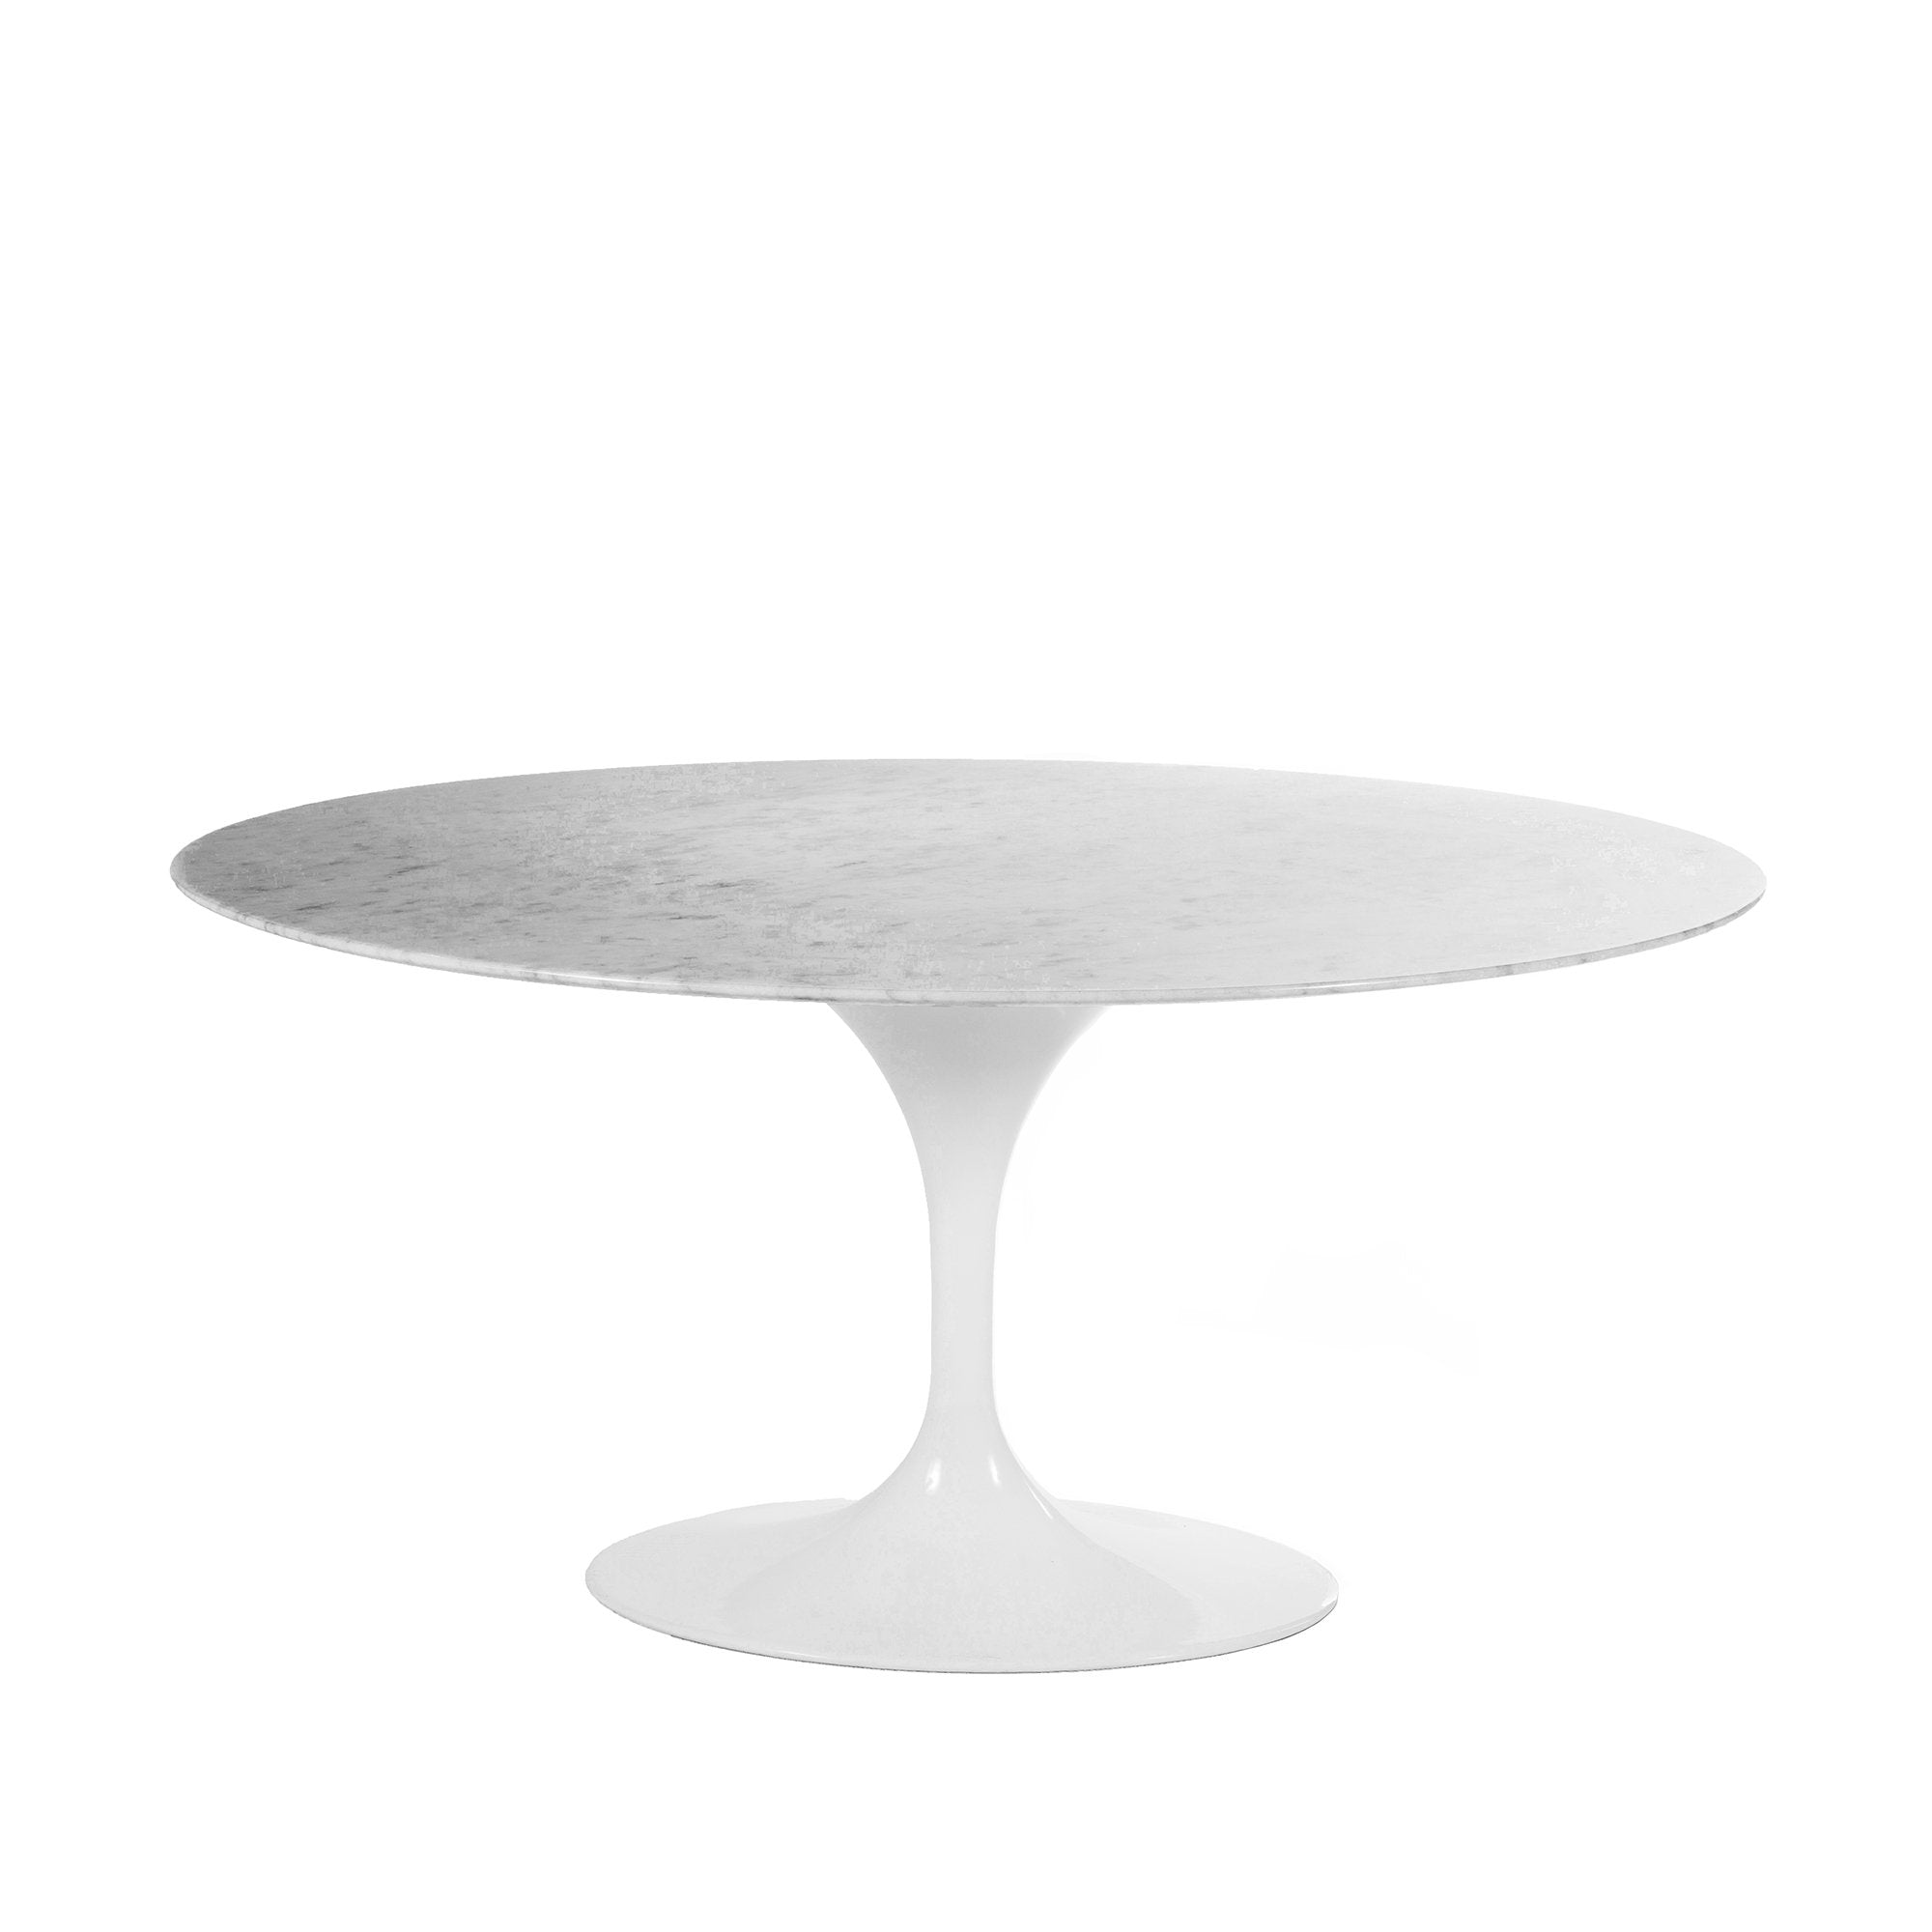 [RT335V6042WHT] The Marble Tulip Dining Table 60